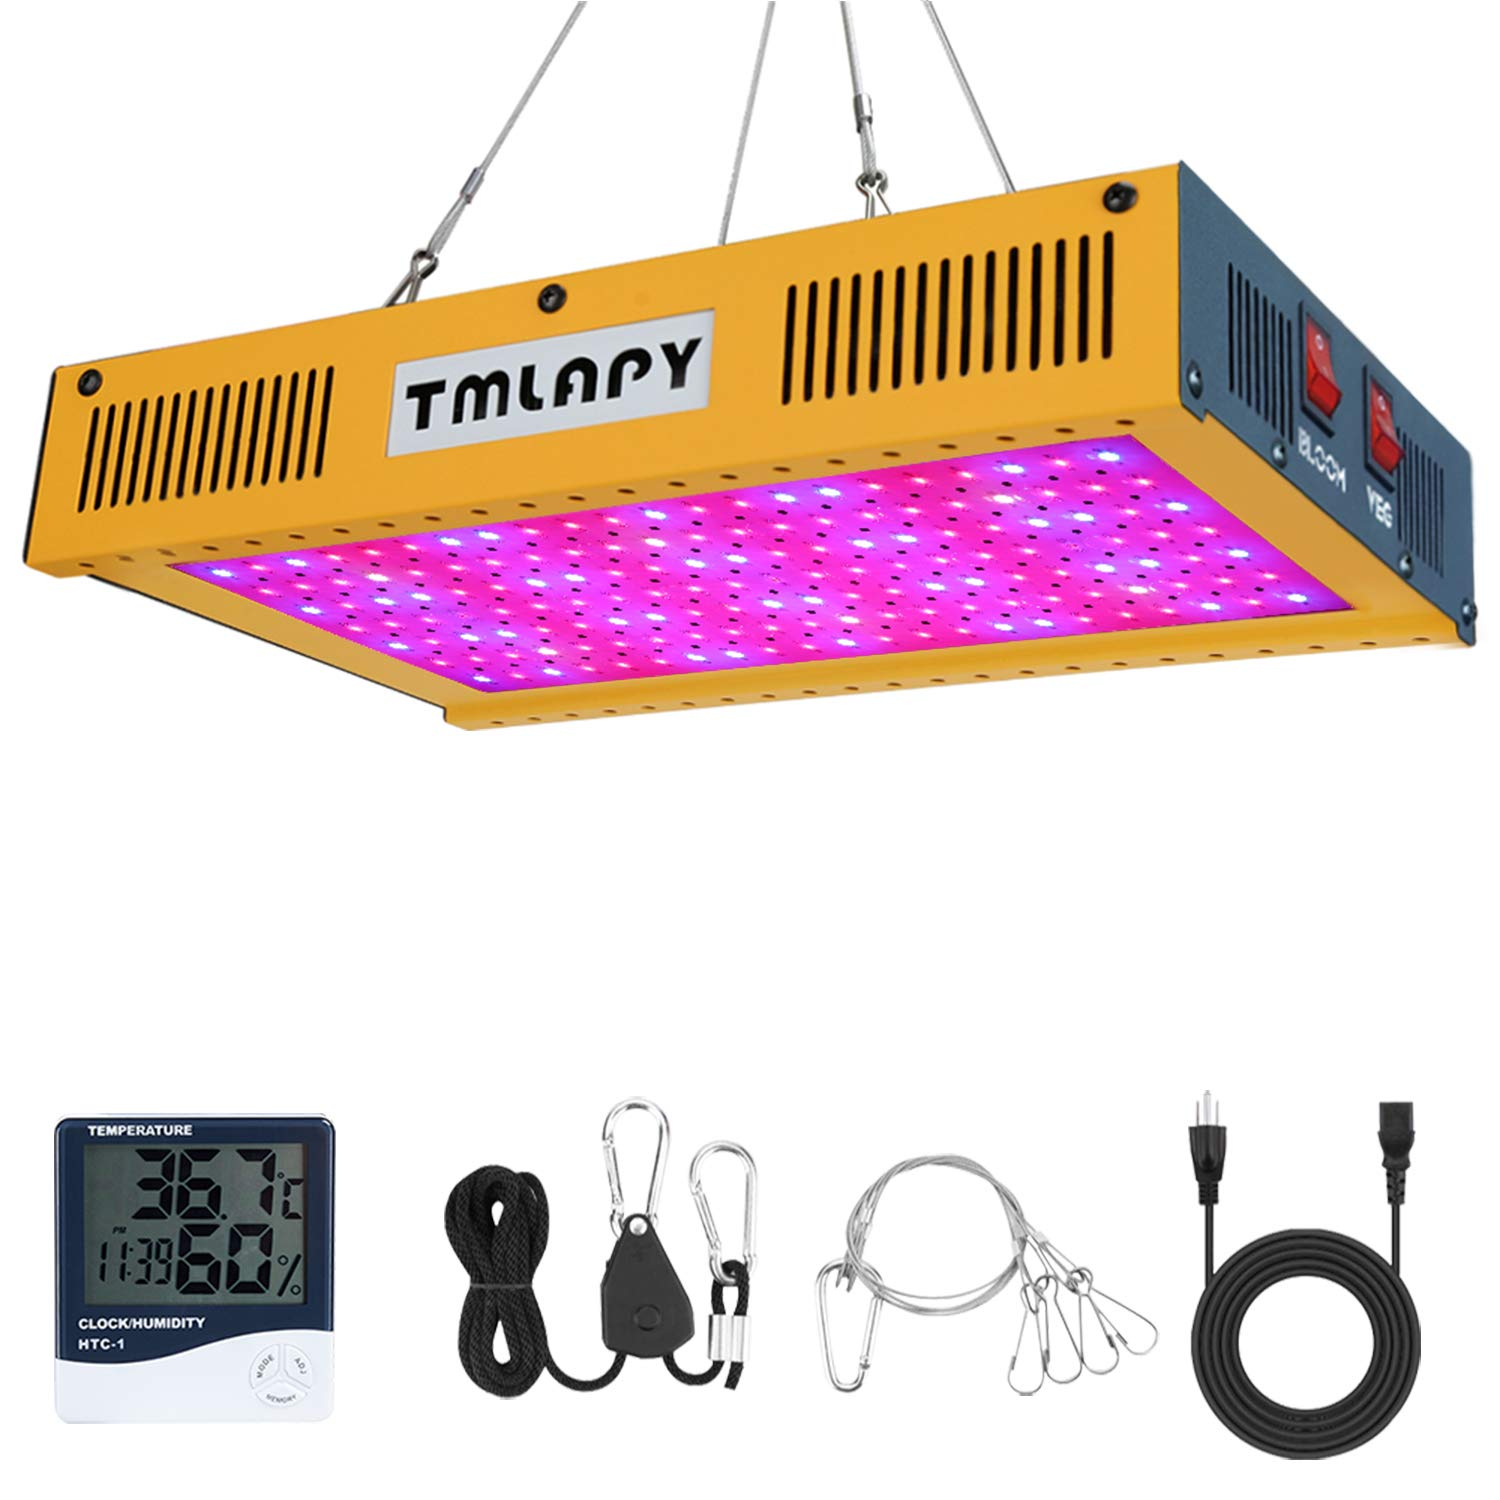 Tmlapy LED Plant Grow Light 1500W - Full Spectrum LED Plant Growing Lamp with Veg and Bloom Switch for Hydroponic Greenhouse Indoor Plants Veg and Flower((Dual-Chip 10W LEDs)) by Tmlapy